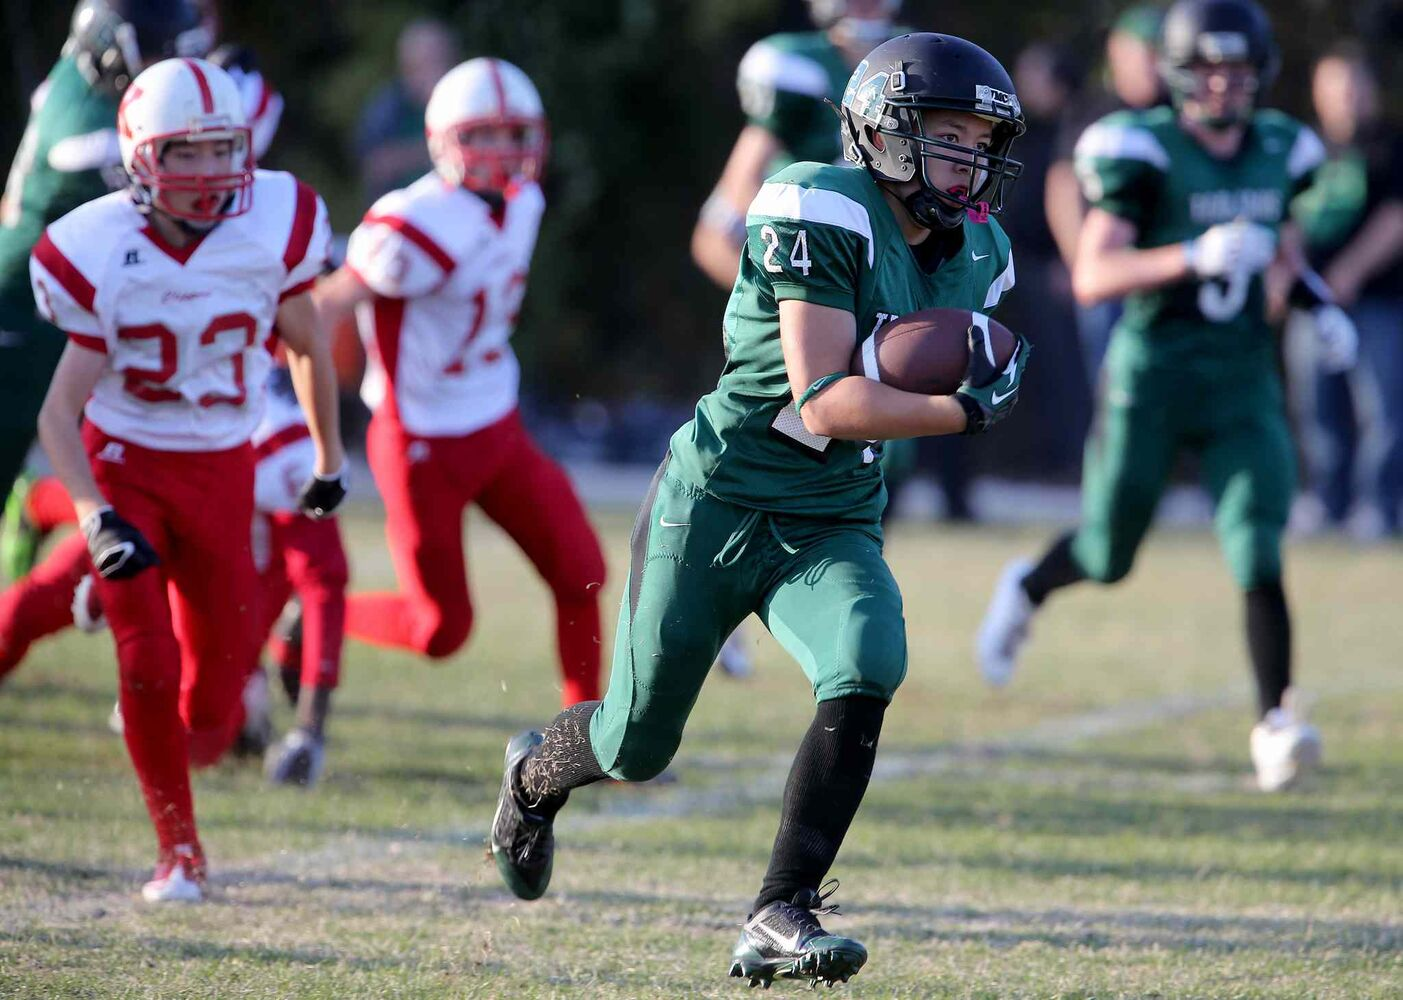 Vincent Massey Trojans' Steinn McIntosh carries the ball against the Kelvin Clippers. (TREVOR HAGAN / WINNIPEG FREE PRESS)